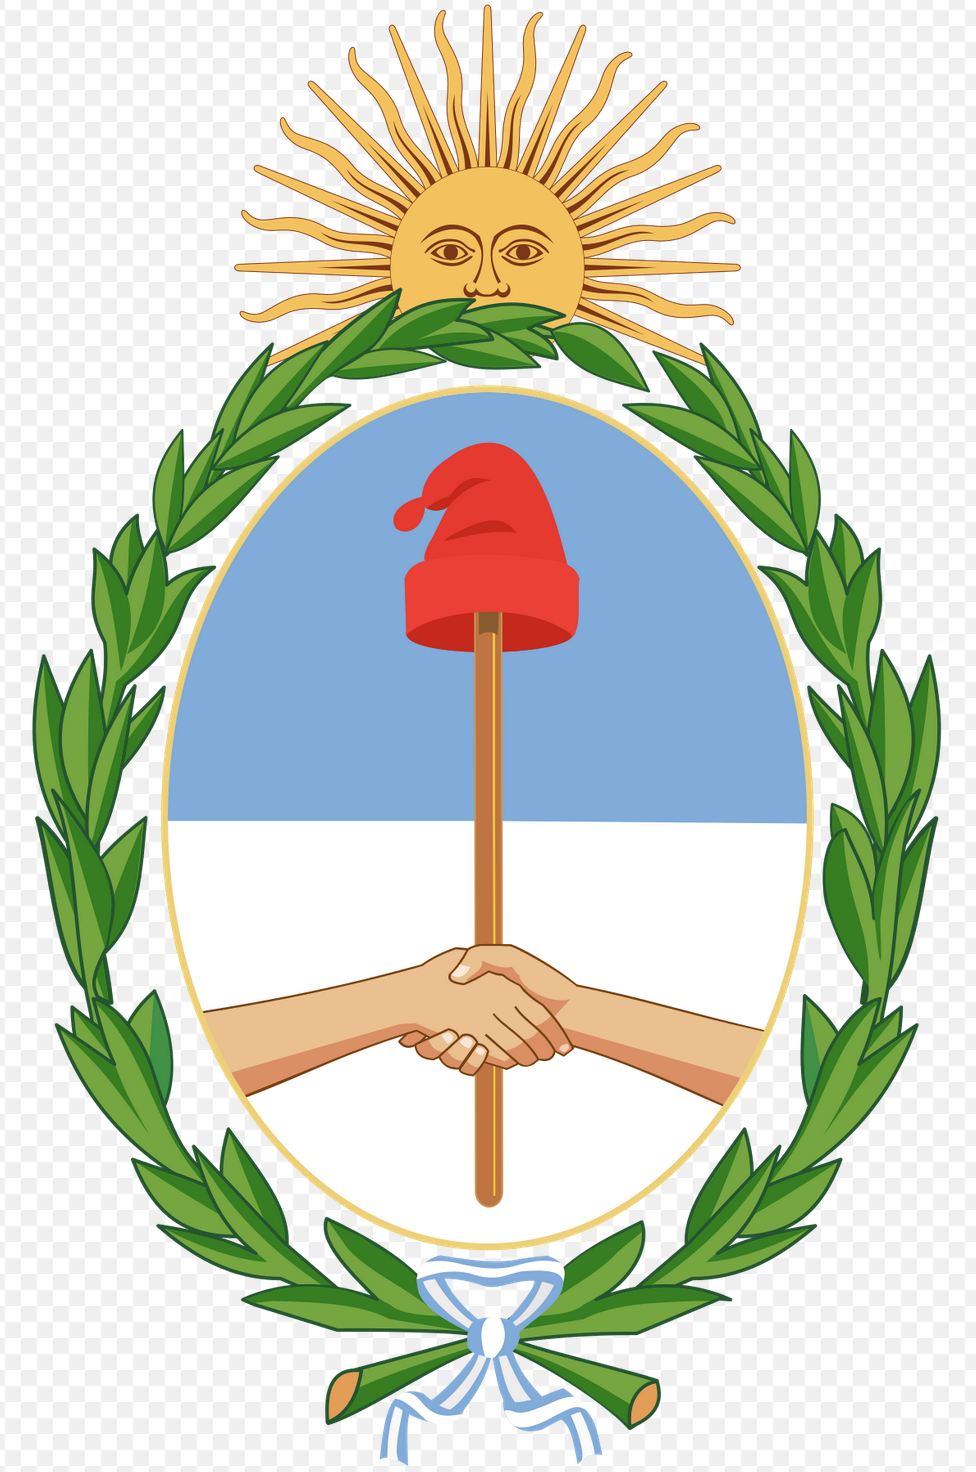 Argentina - Personal Data Protection Act 25.326